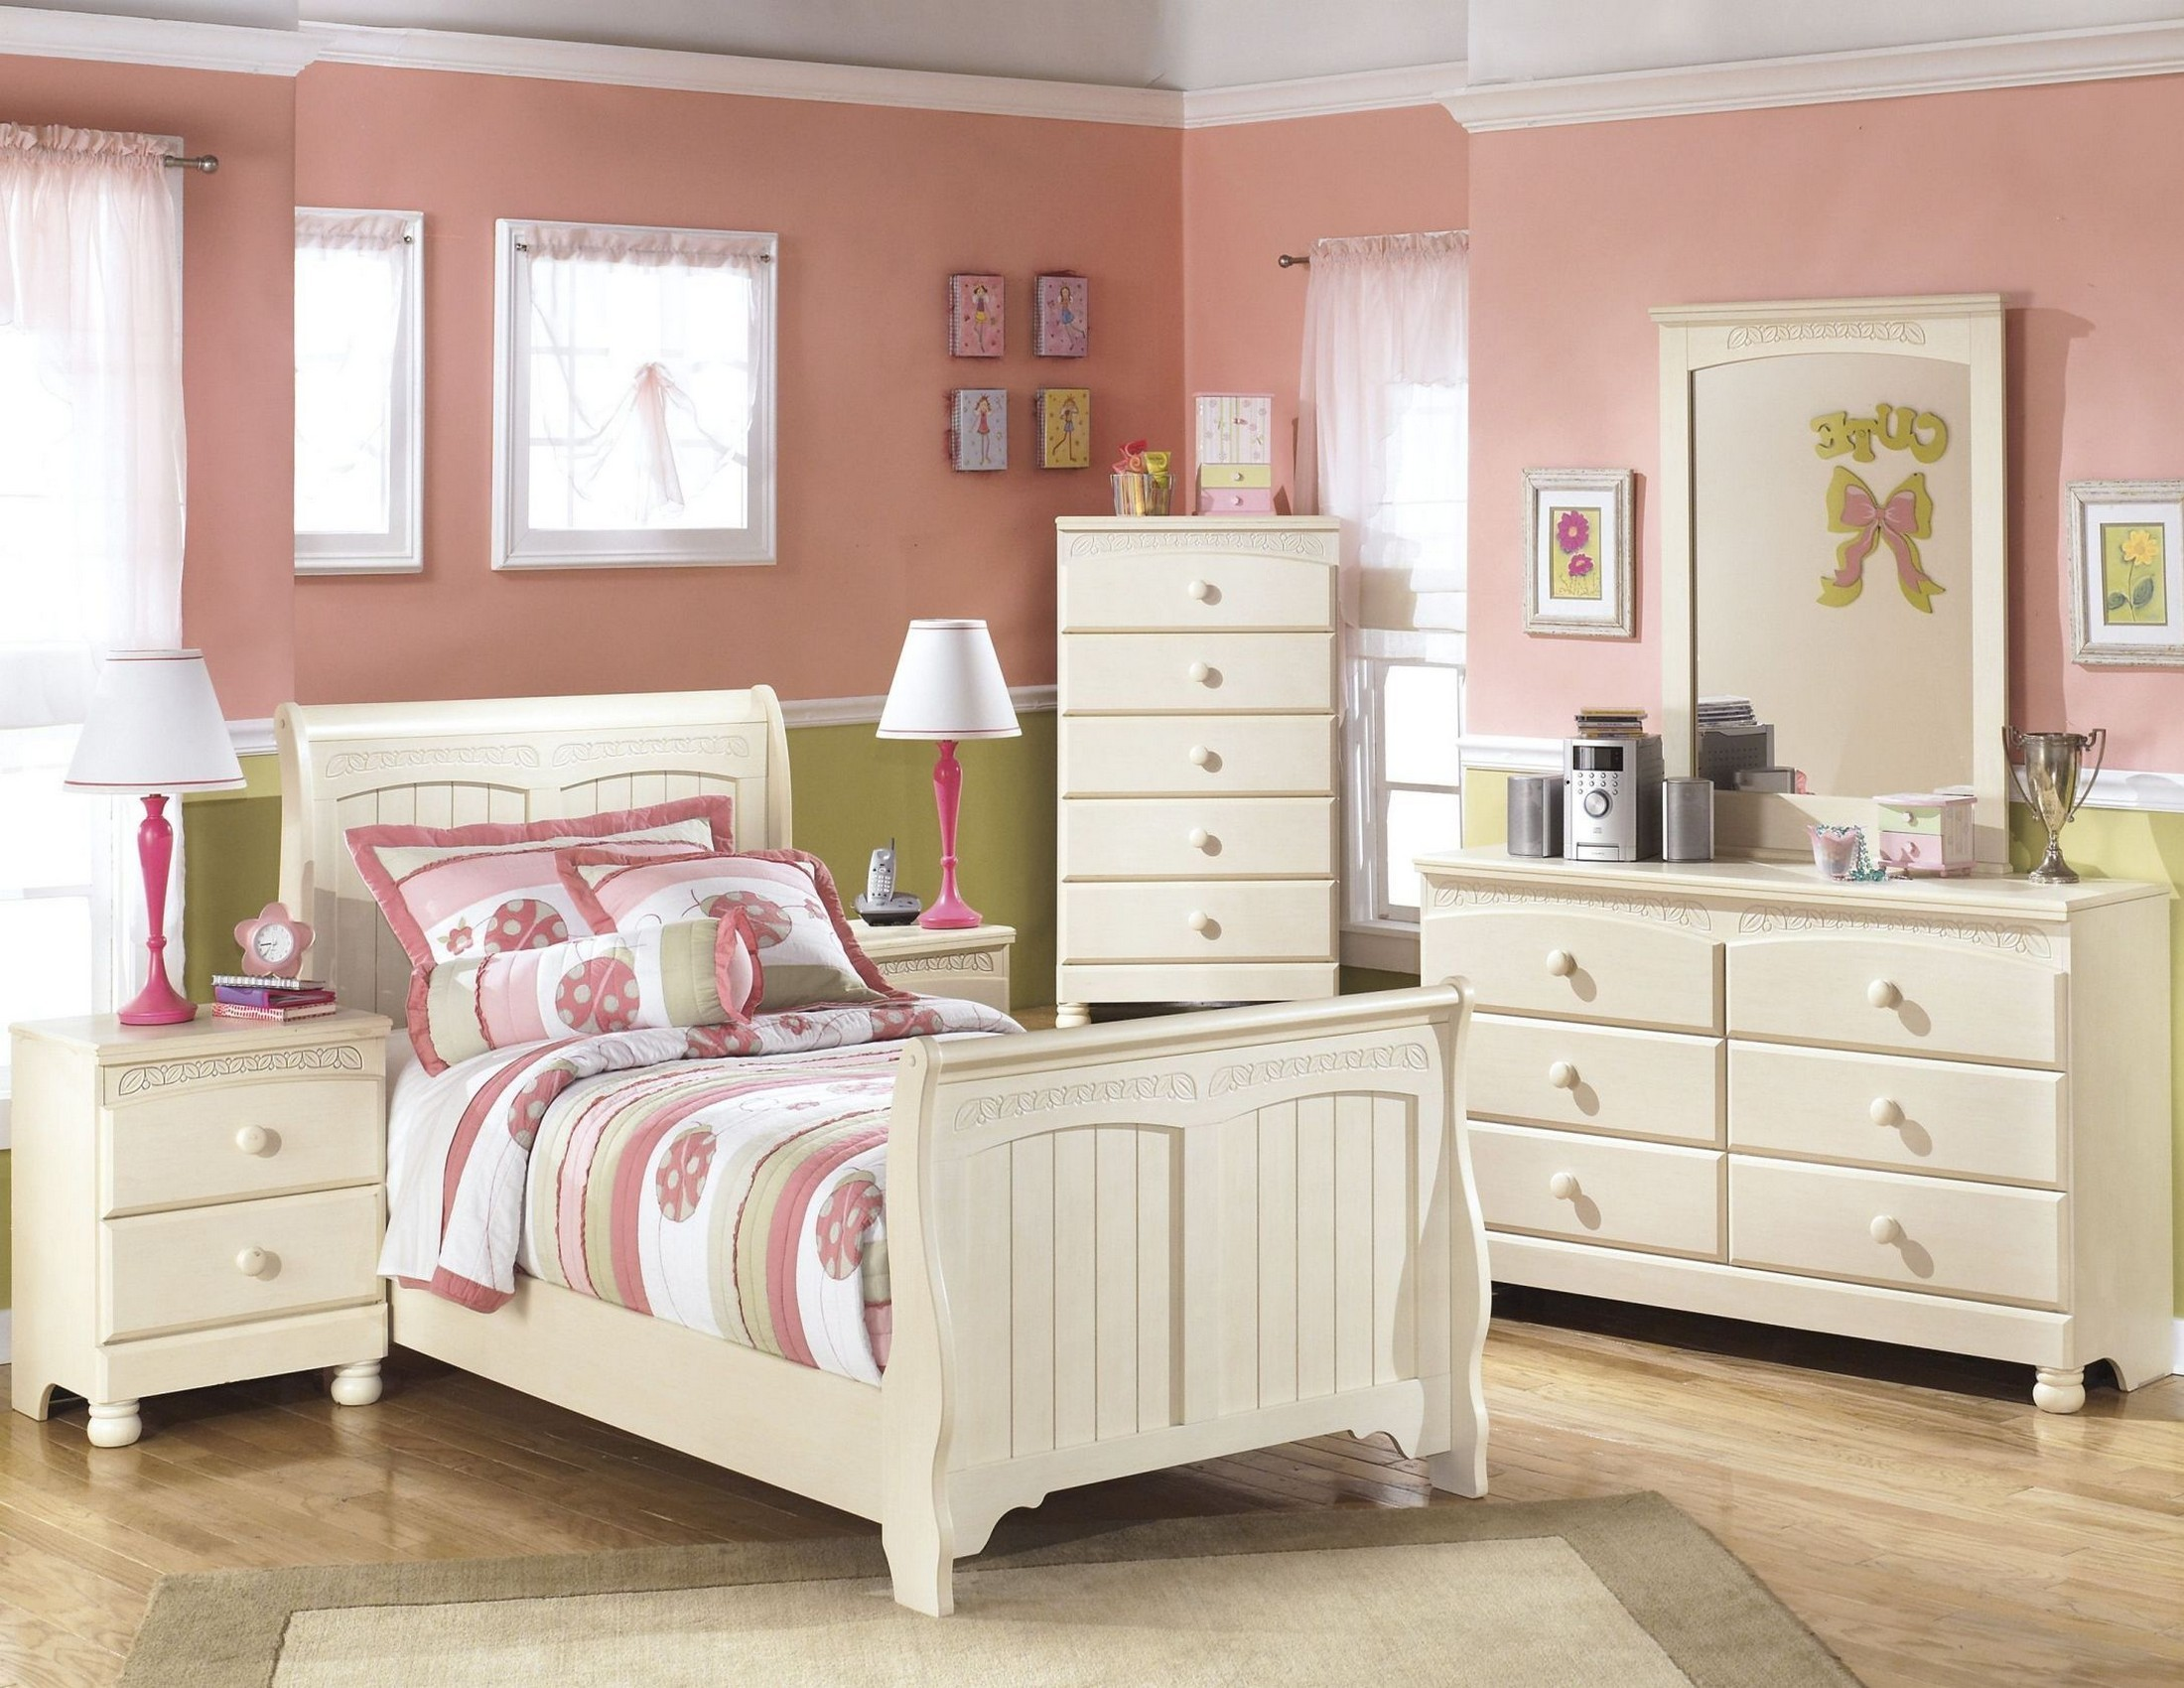 Cottage retreat youth sleigh bedroom set from ashley b213 - Cottage retreat bedroom furniture ...